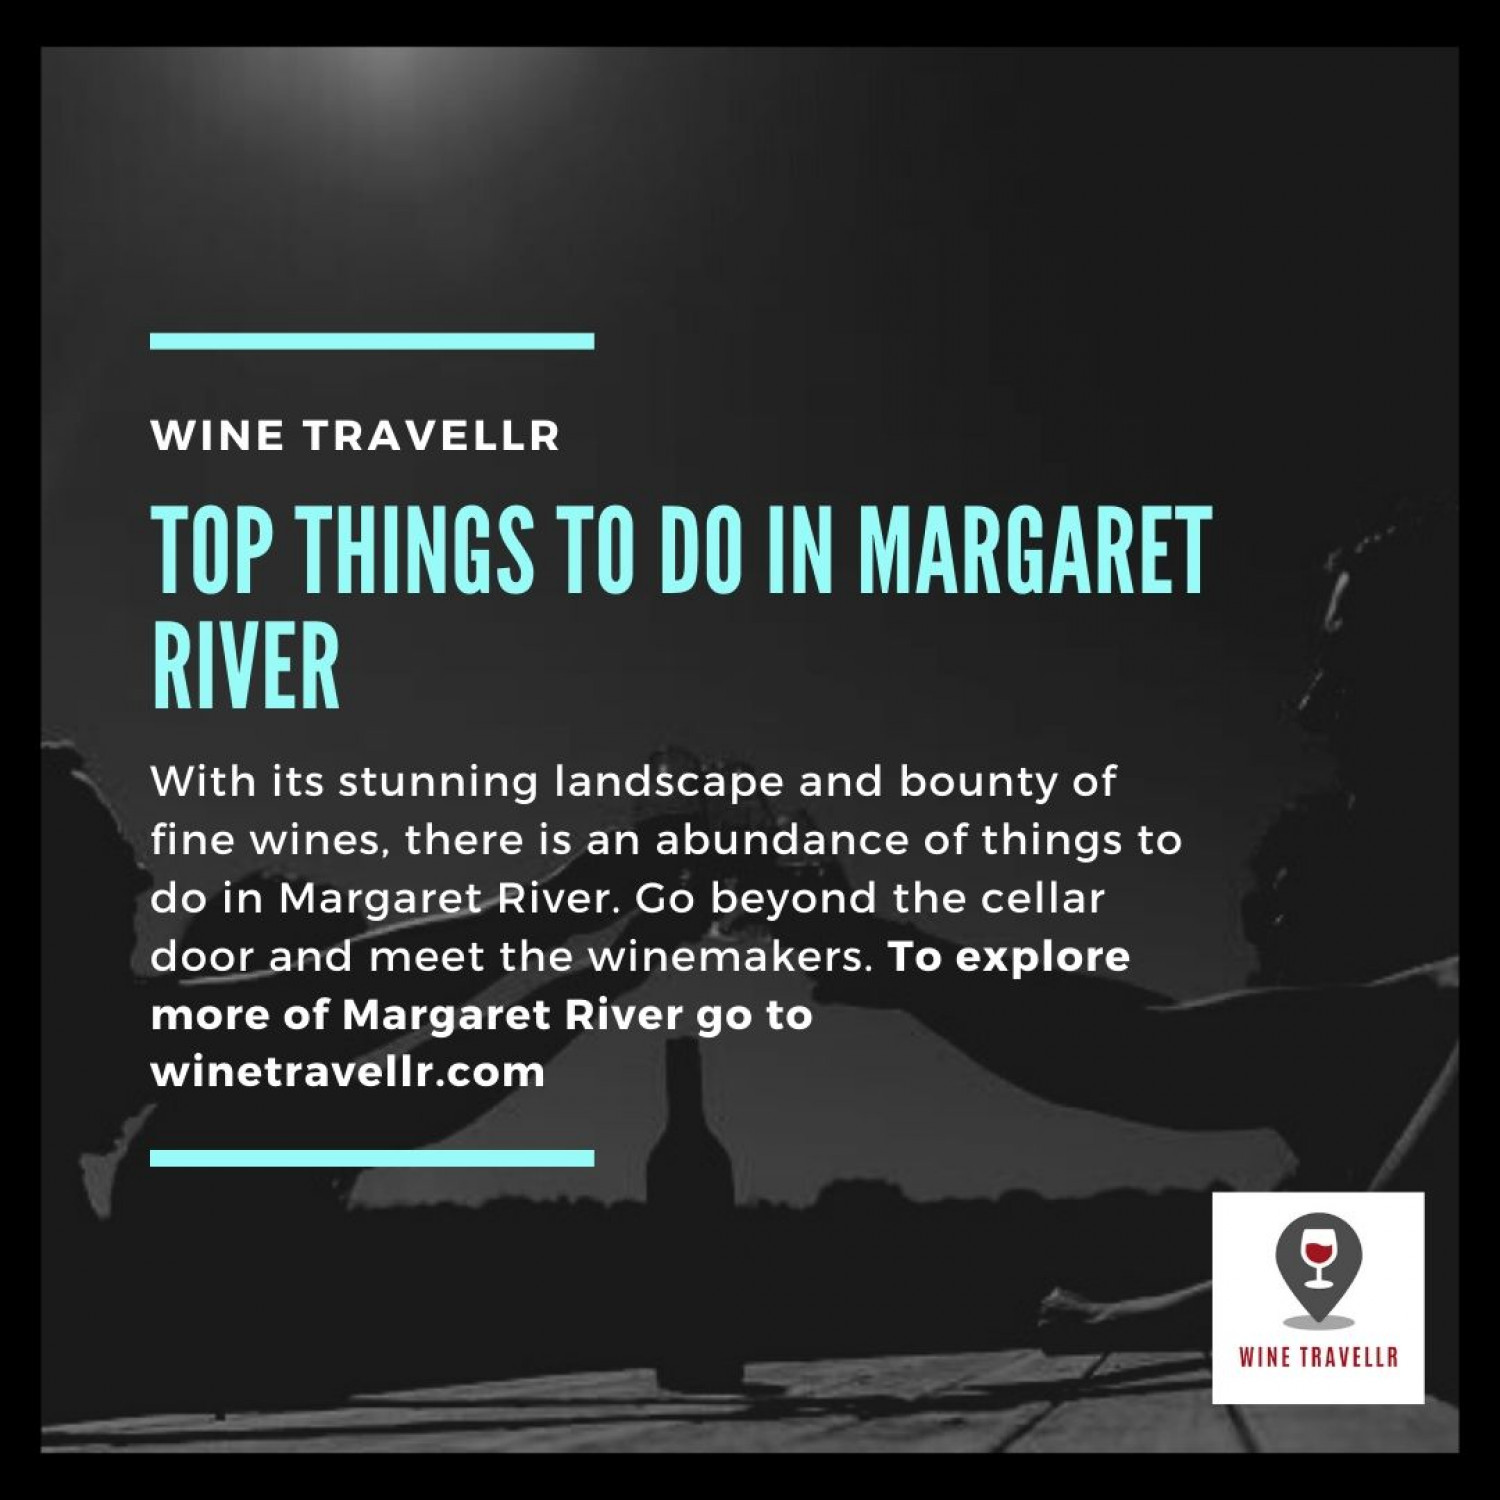 Top Things To Do In Margaret River Infographic